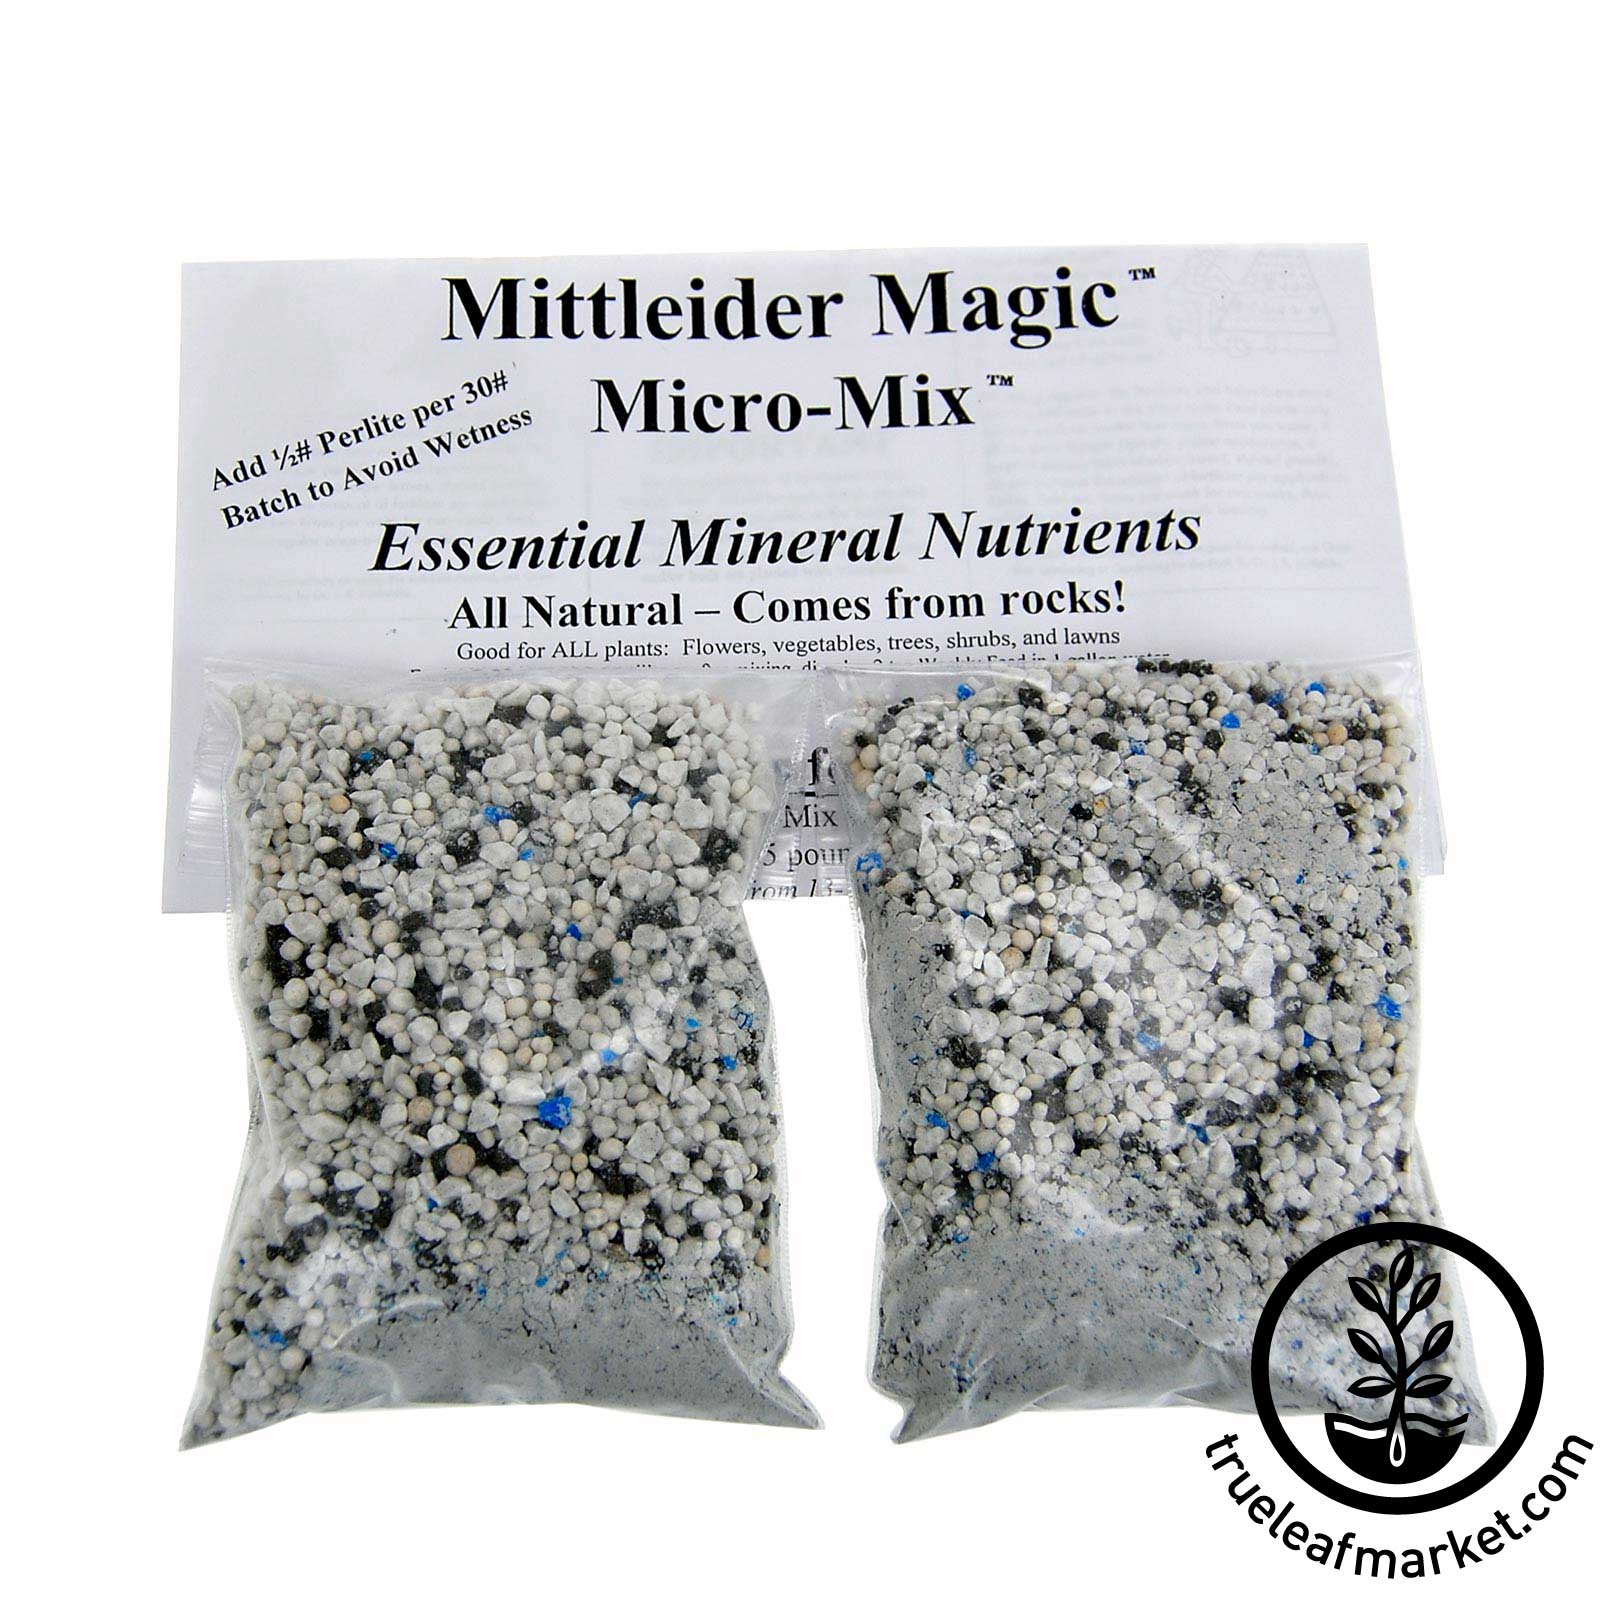 Mittleider Magic Micro-Nutrient Mix